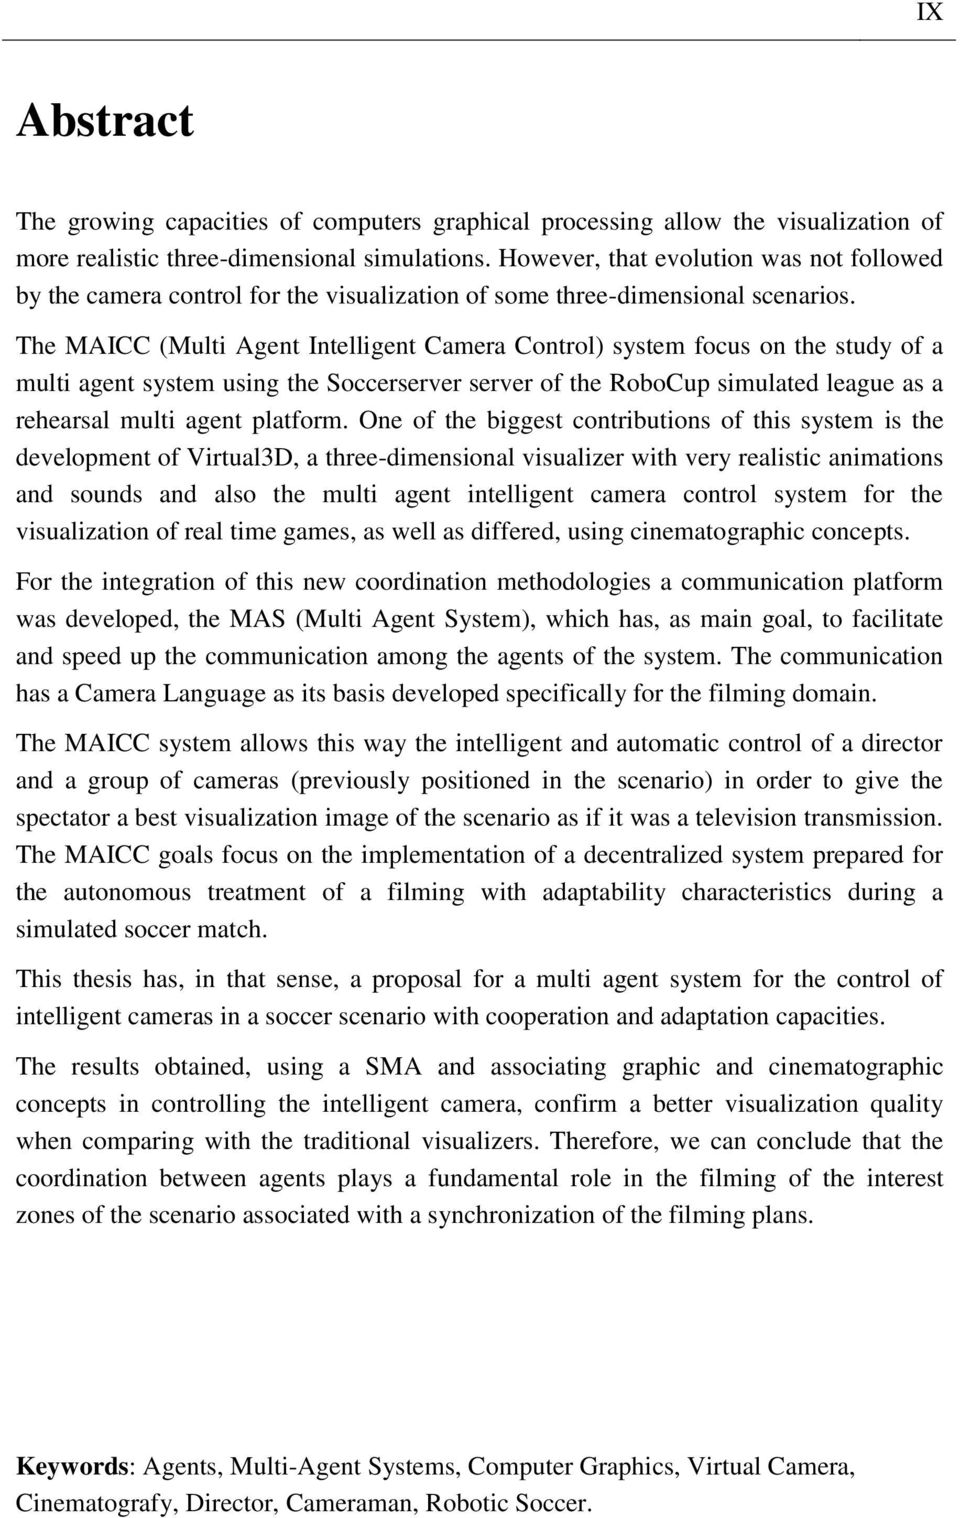 The MAICC (Multi Agent Intelligent Camera Control) system focus on the study of a multi agent system using the Soccerserver server of the RoboCup simulated league as a rehearsal multi agent platform.